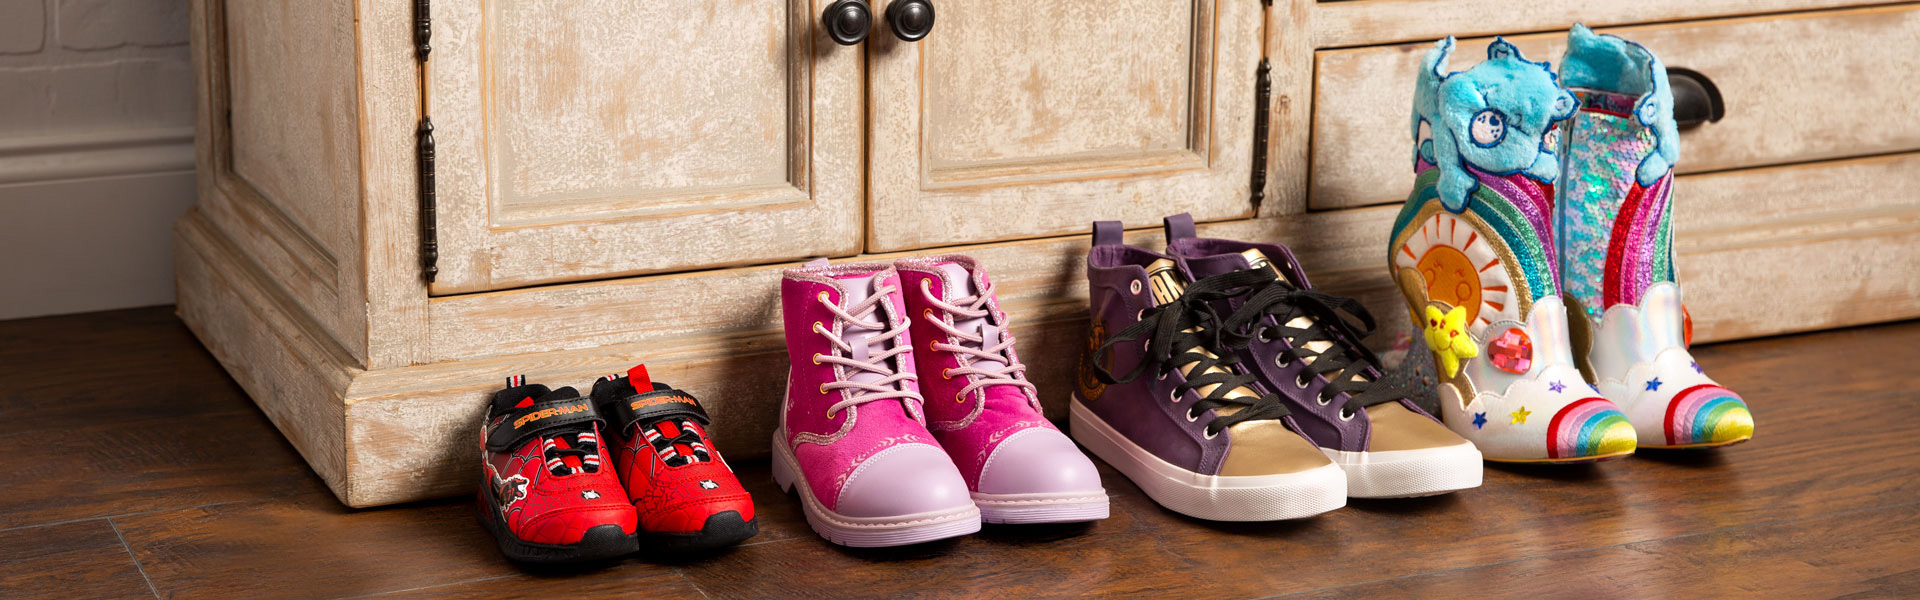 Shoes for Adult & Kids